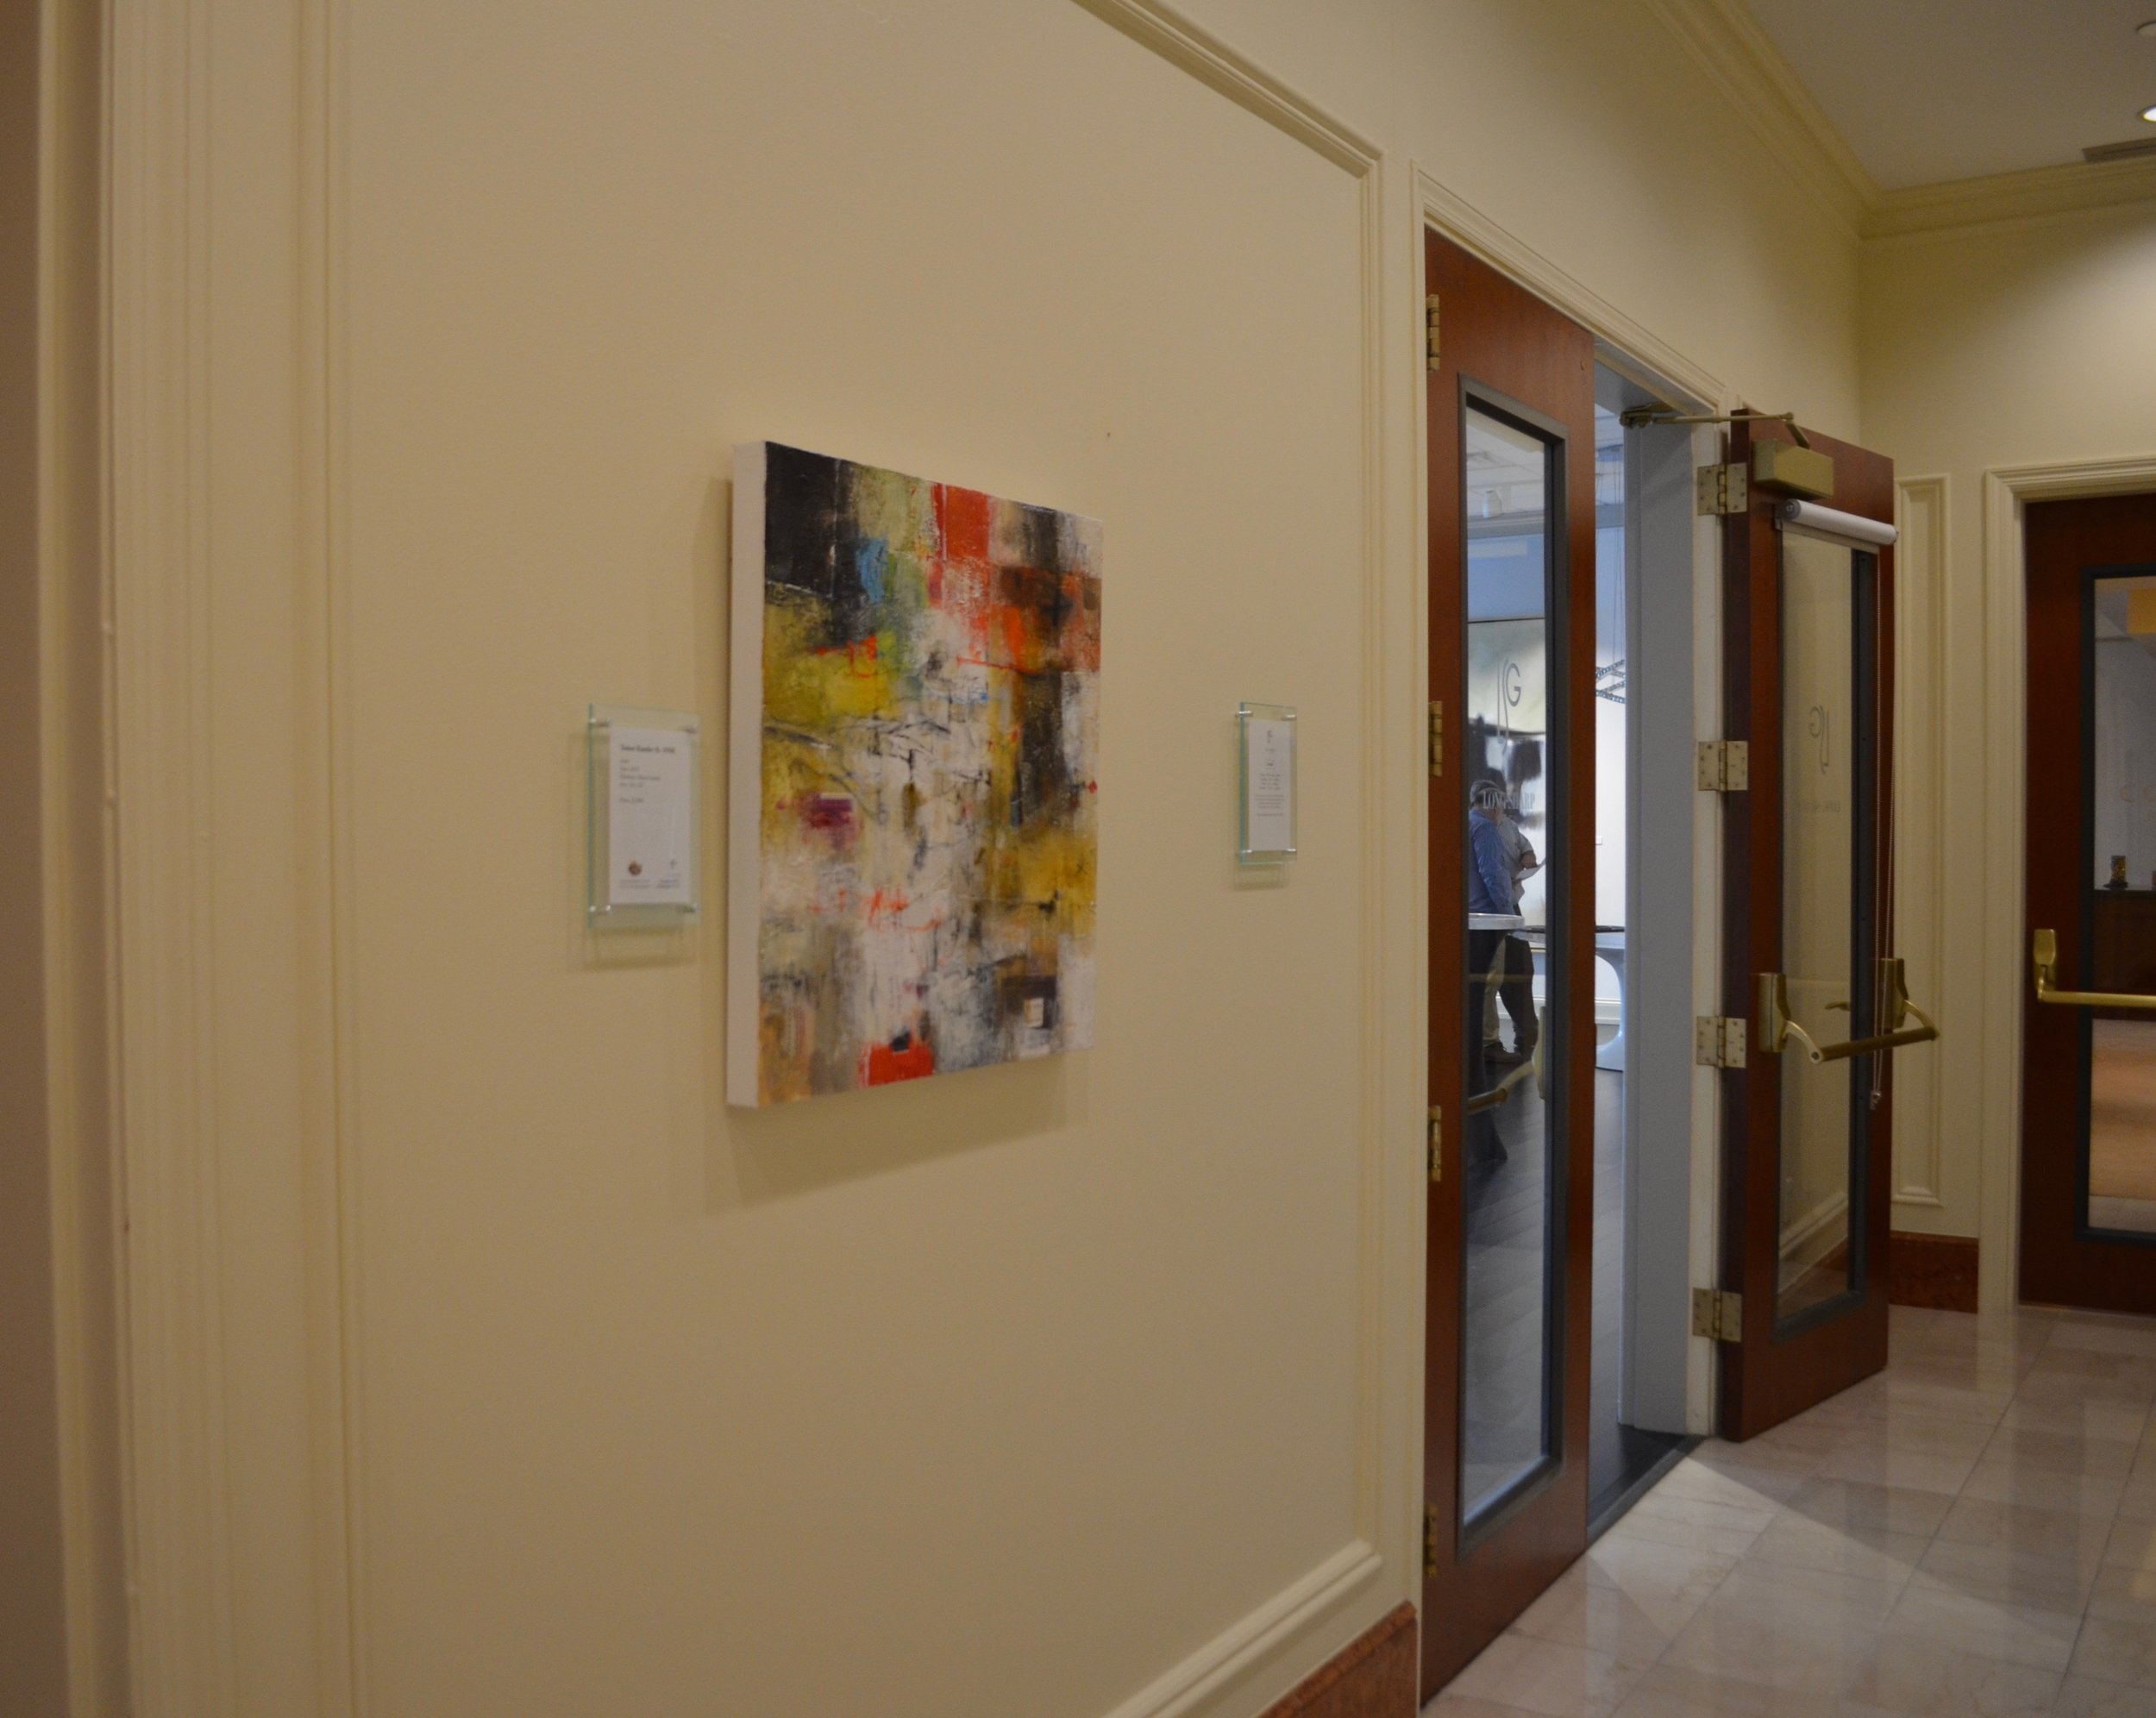 mixed media on canvas by tamar kander, door, additional images